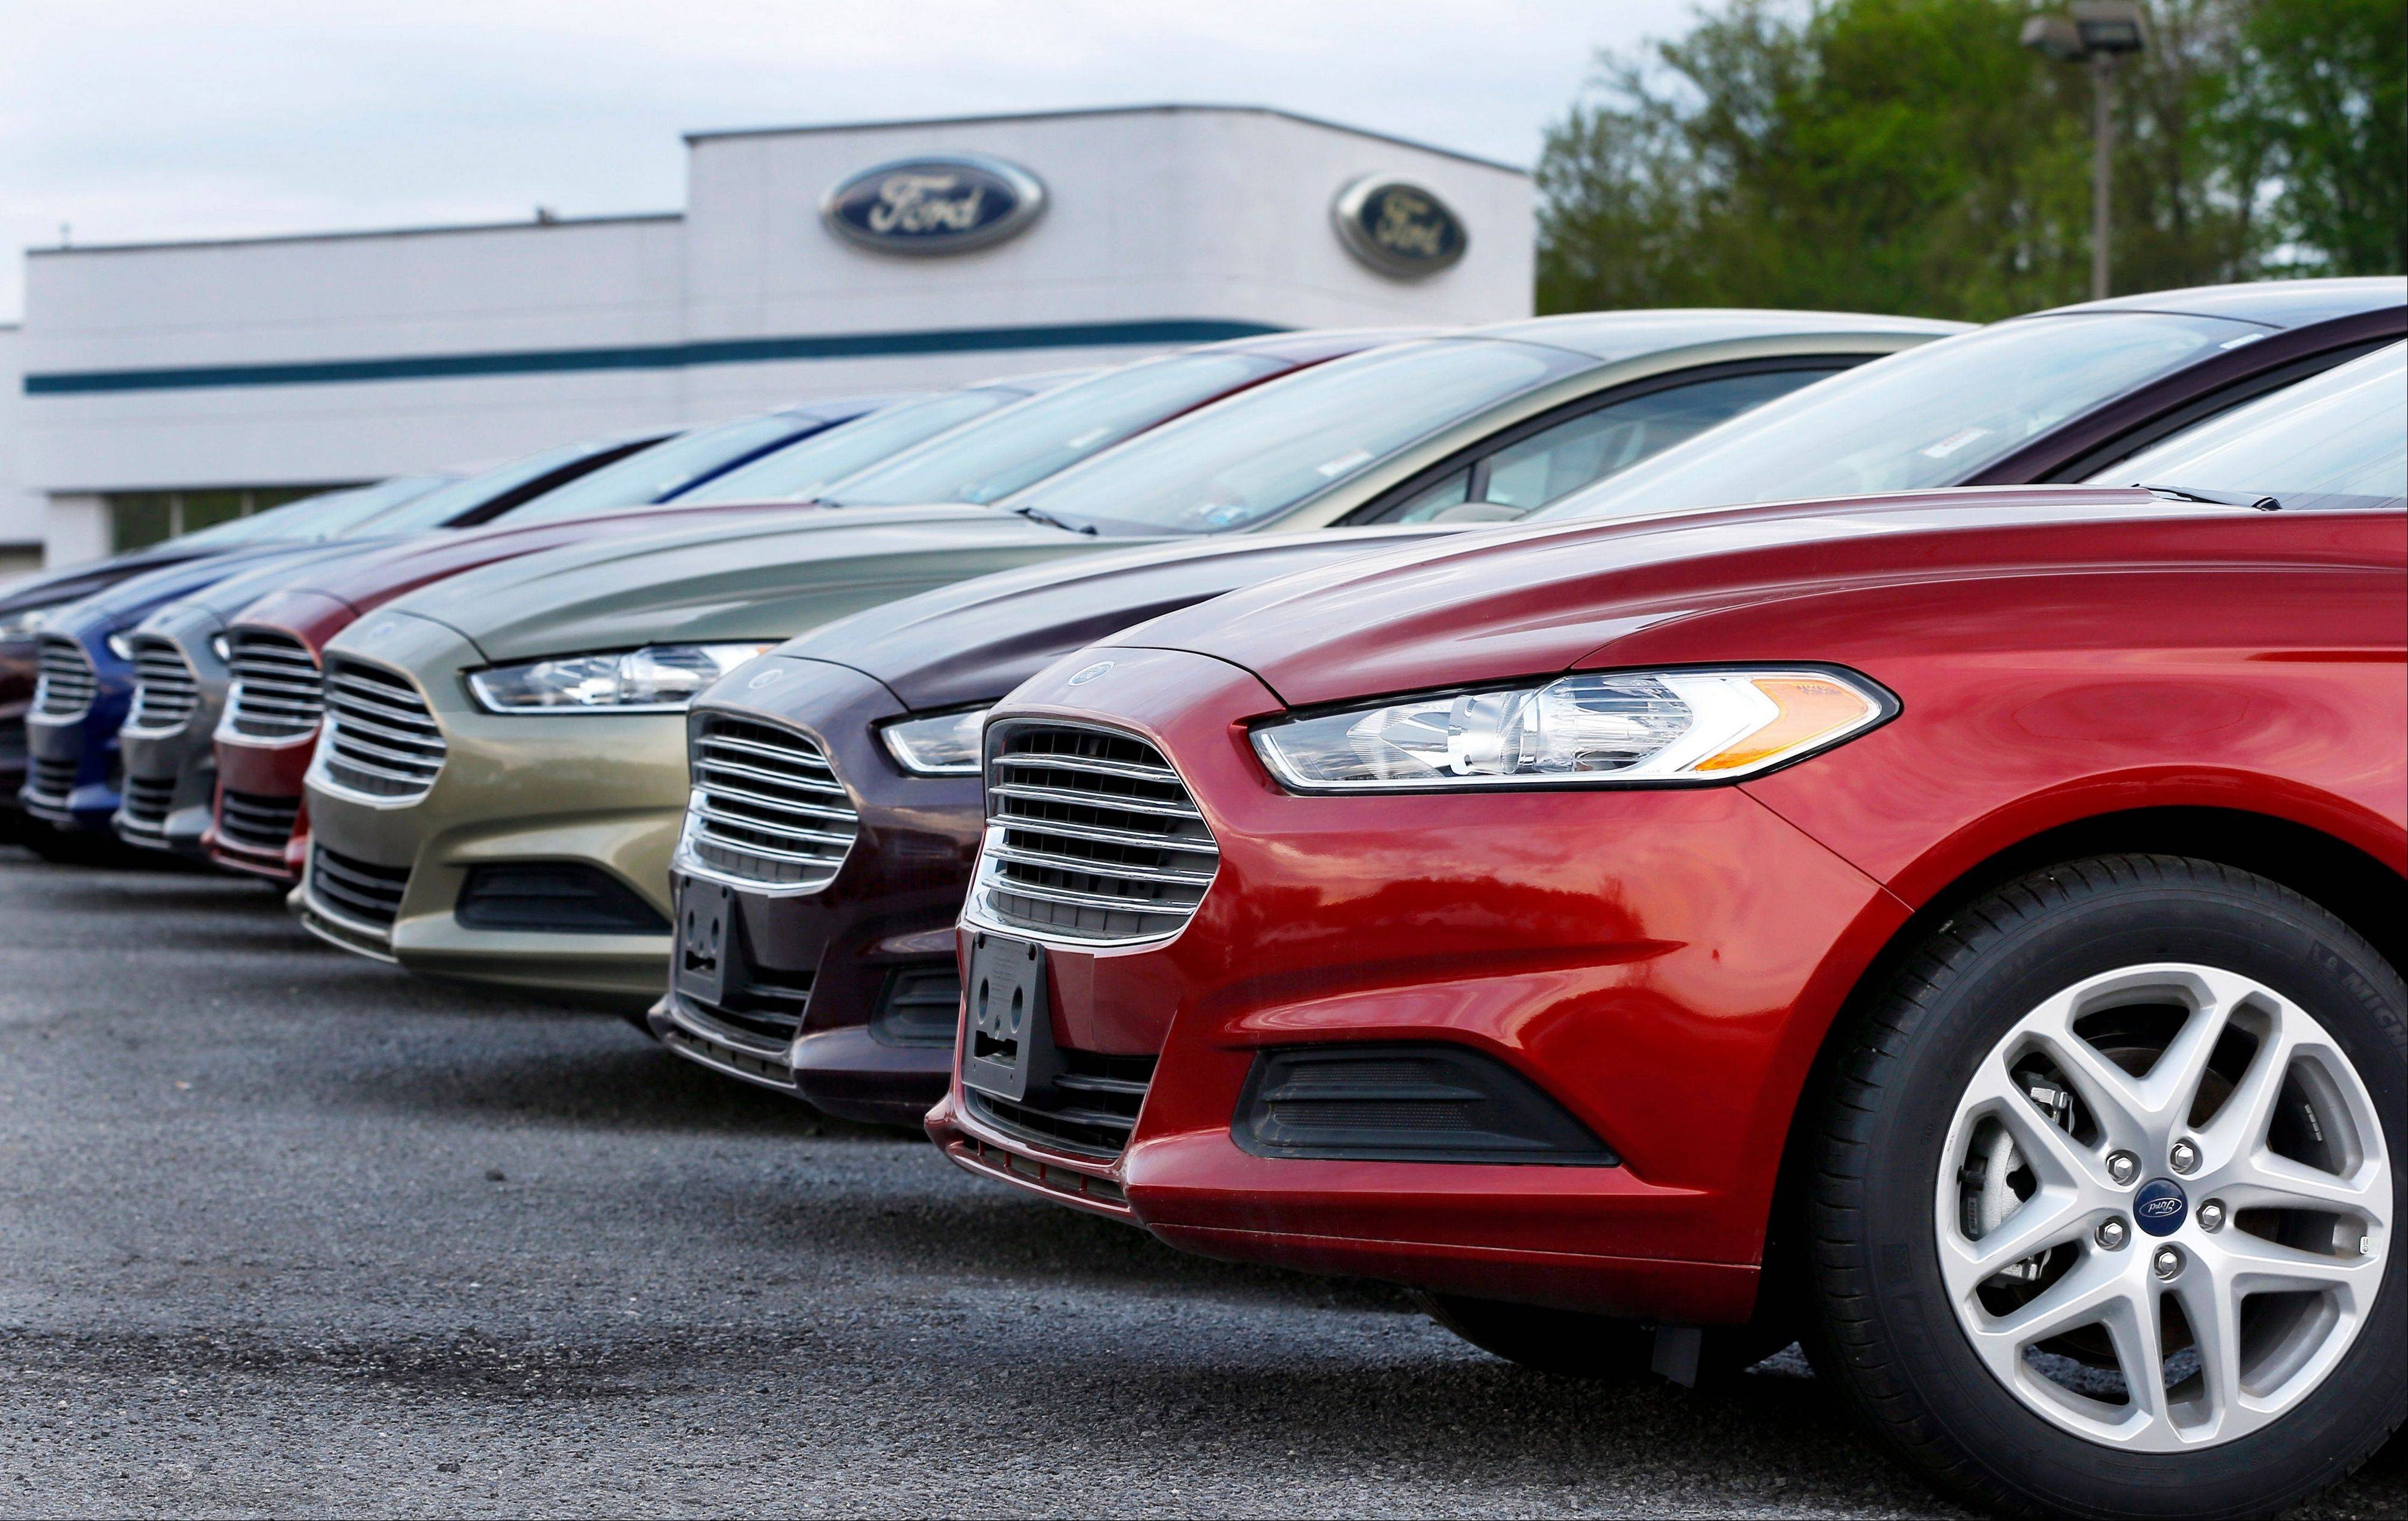 Car buyers were lured by low interest rates and Memorial Day sales. Overall, U.S. consumers bought 1.4 million vehicles in May, up 8 percent from the same month a year ago, according to Autodata Corp.